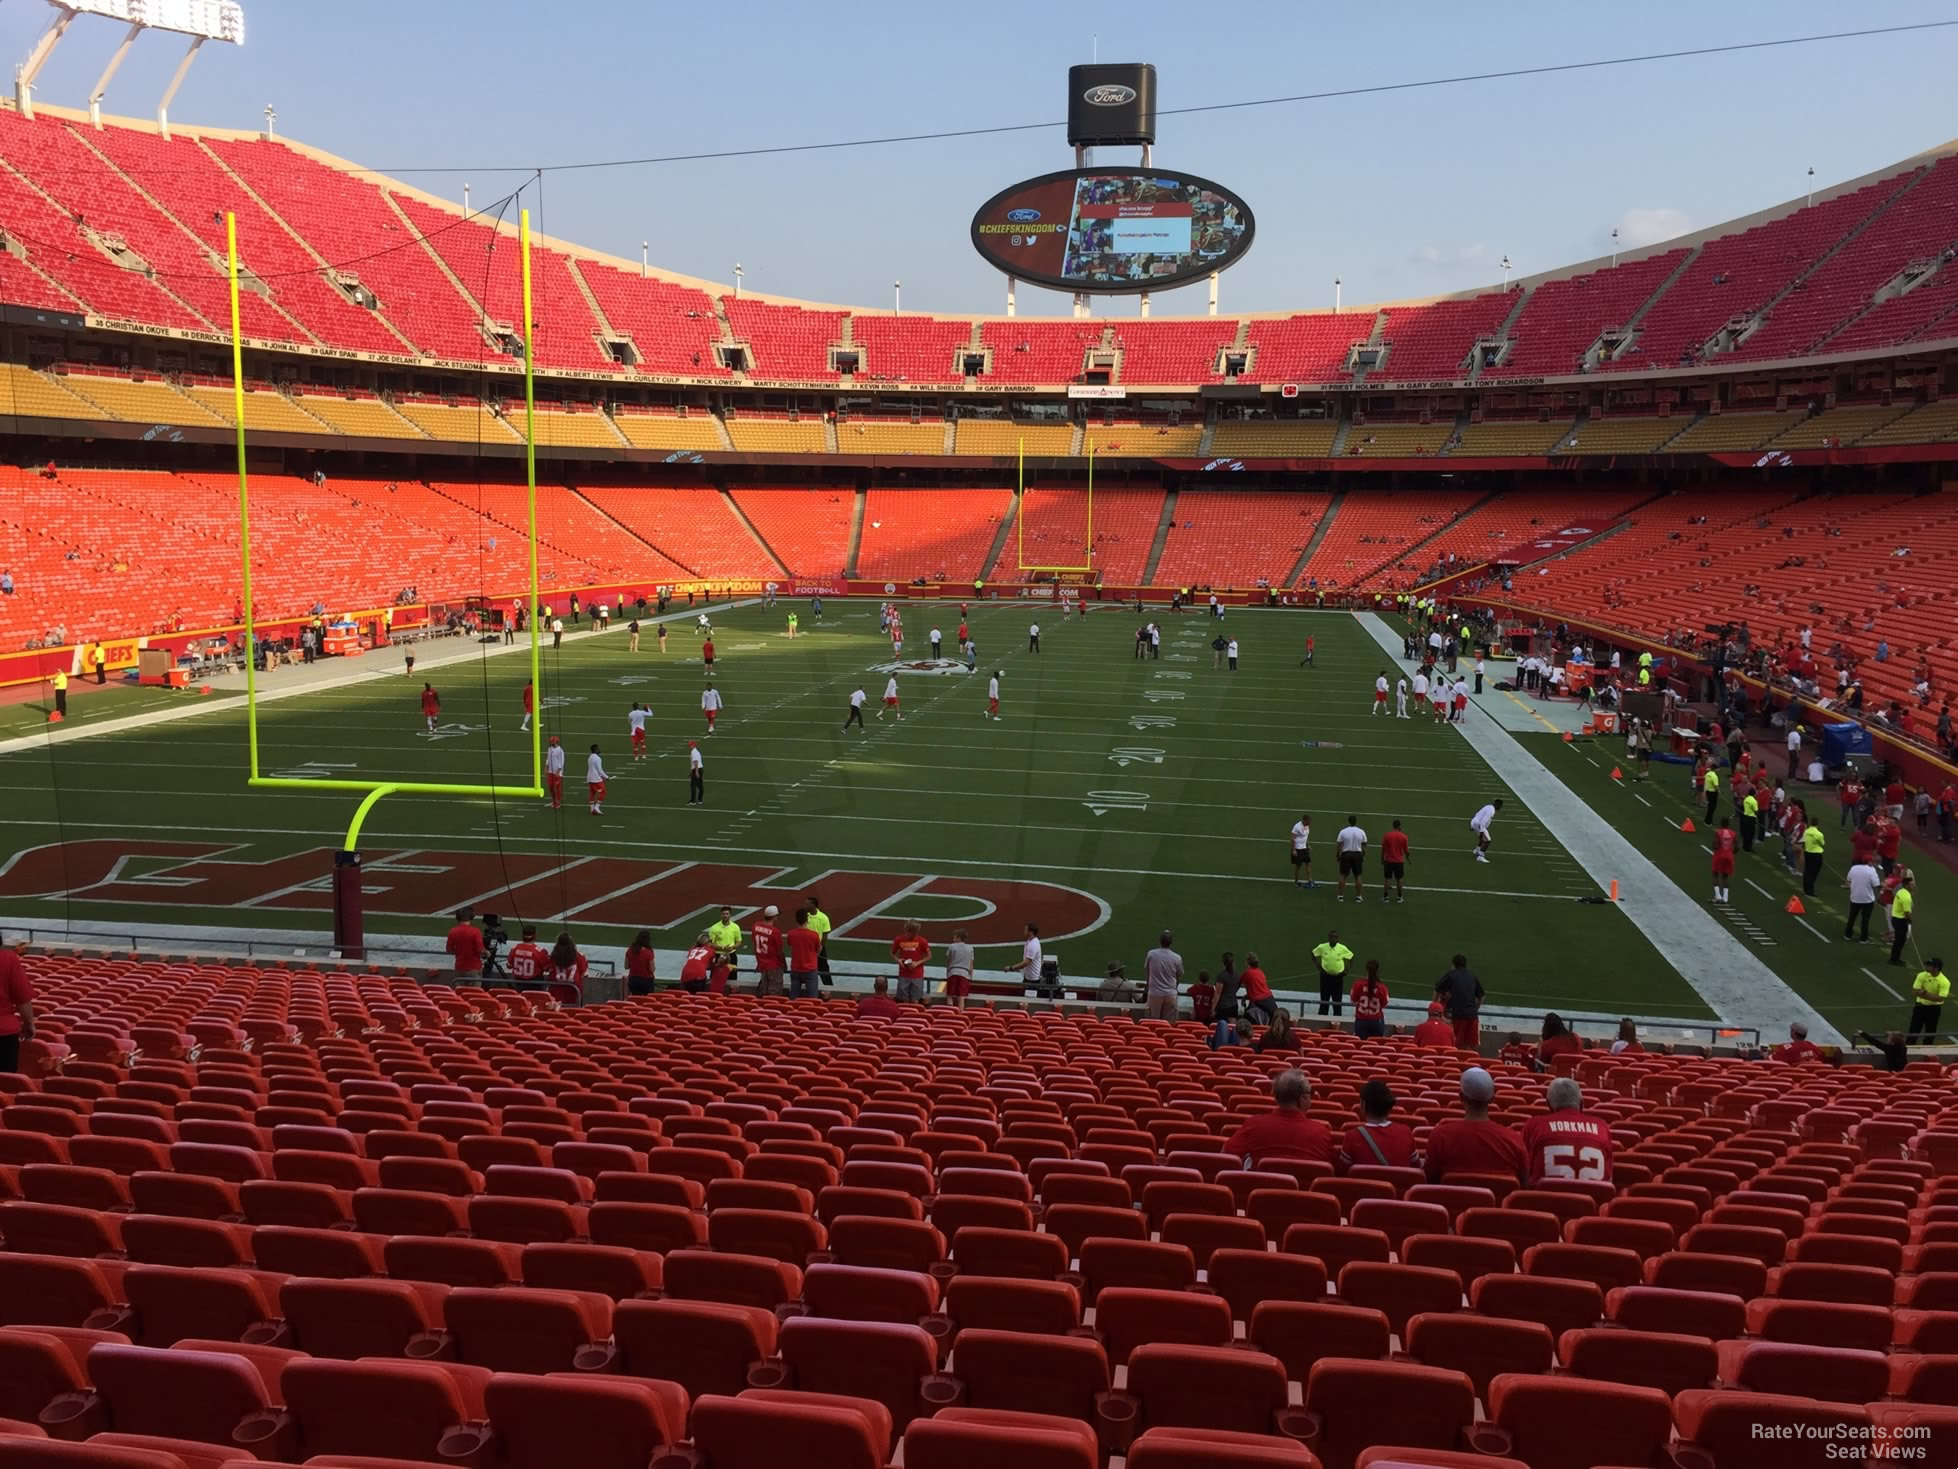 Seat View for Arrowhead Stadium Section 127, Row 30